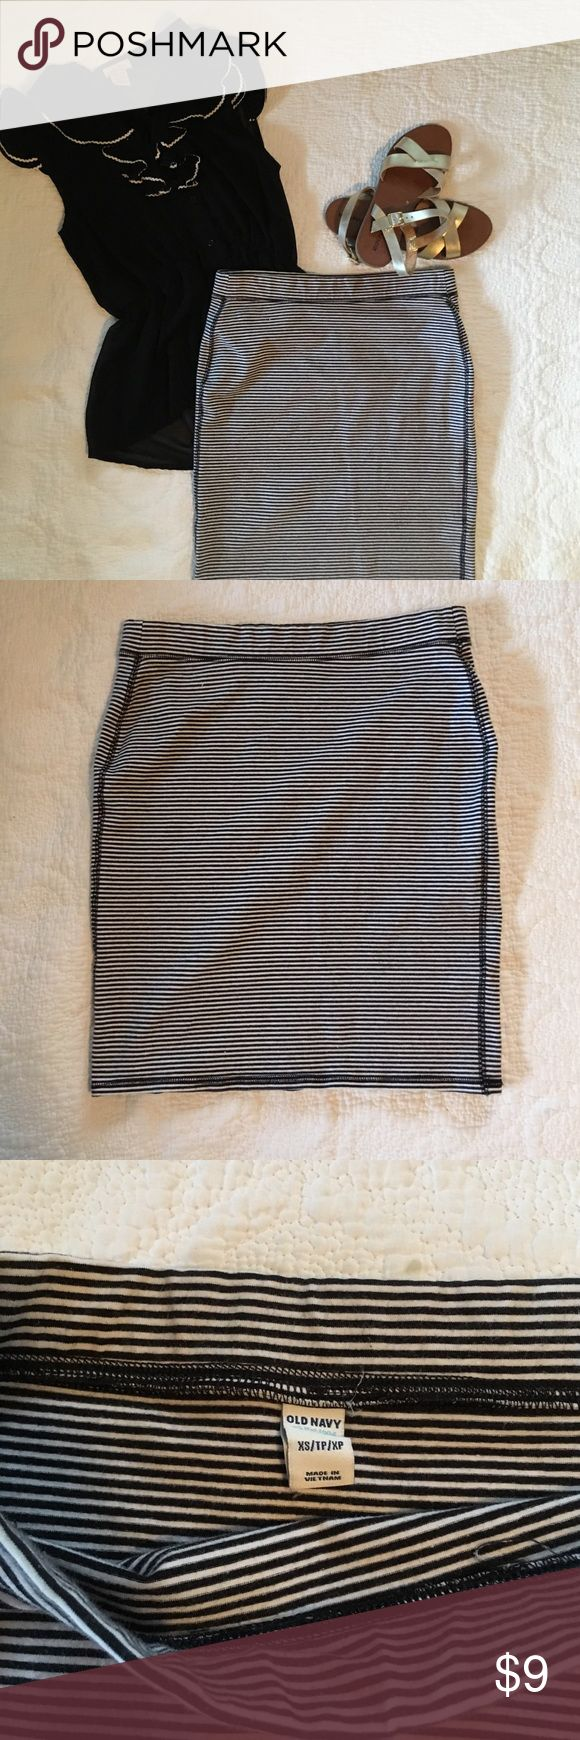 Black & white striped pencil skirt Knee length old navy pencil skirt. Can be dressed up or down Old Navy Skirts Pencil